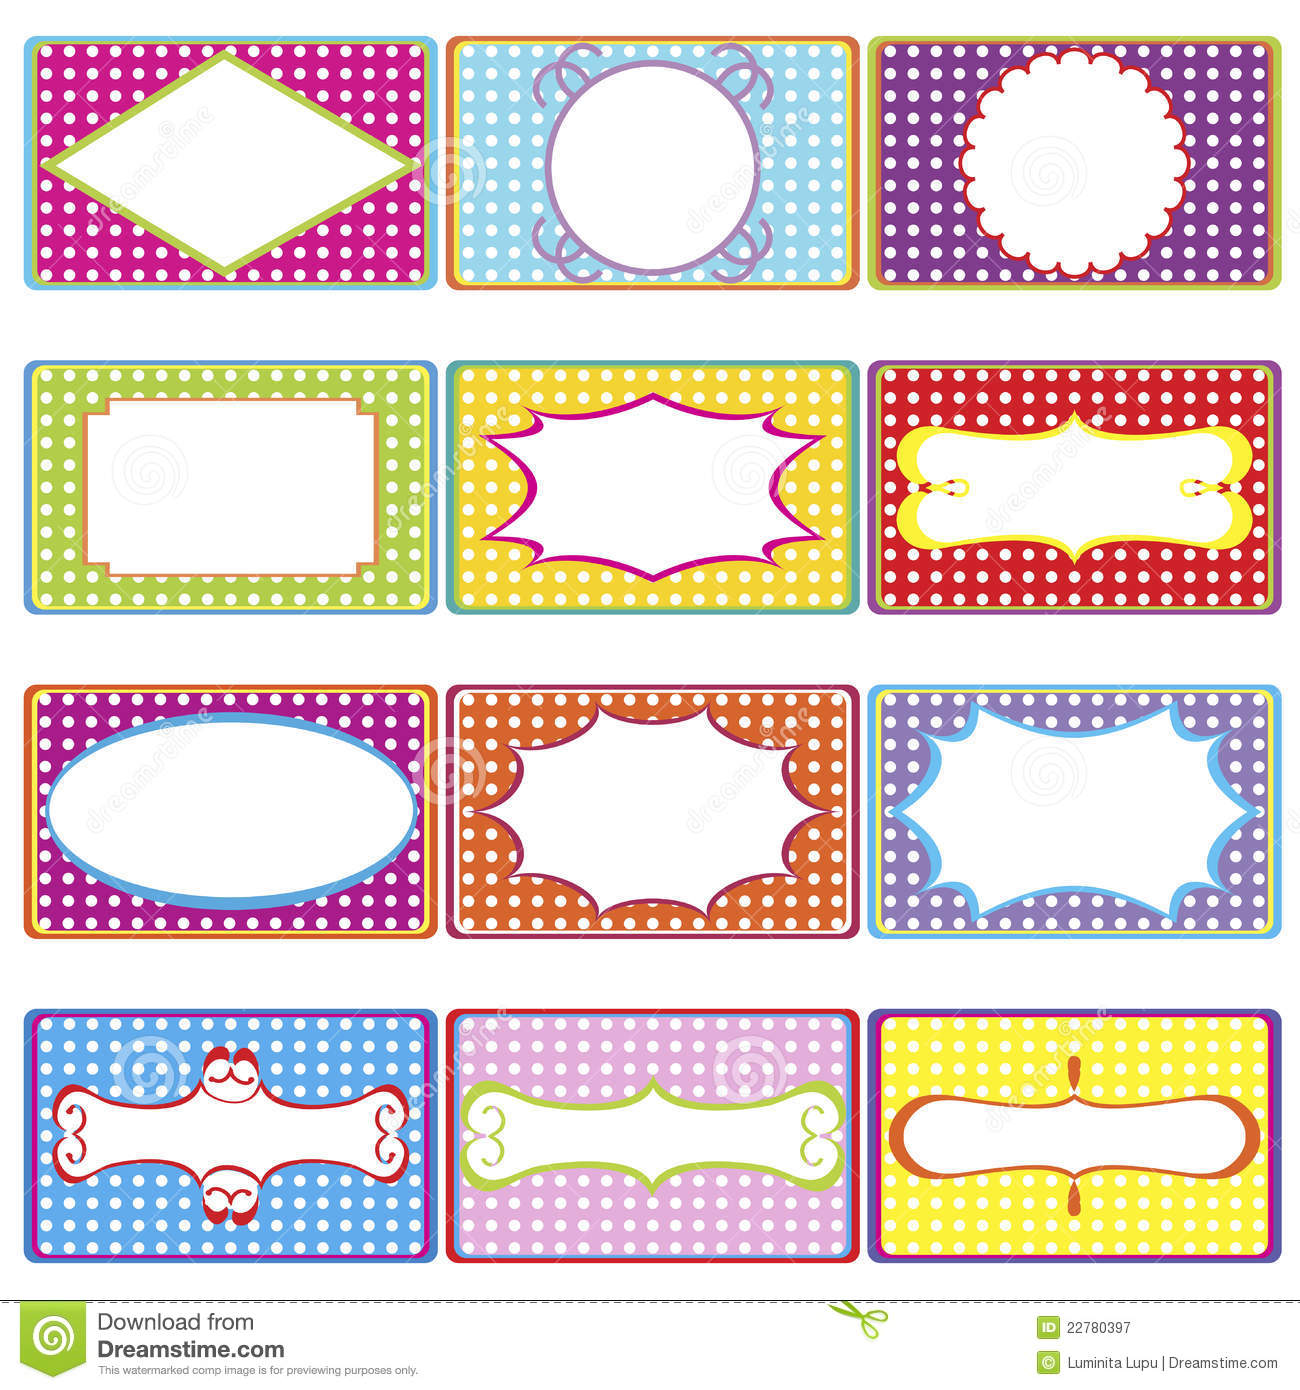 Colored frames stock vector. Illustration of frame, graphic - 22780397